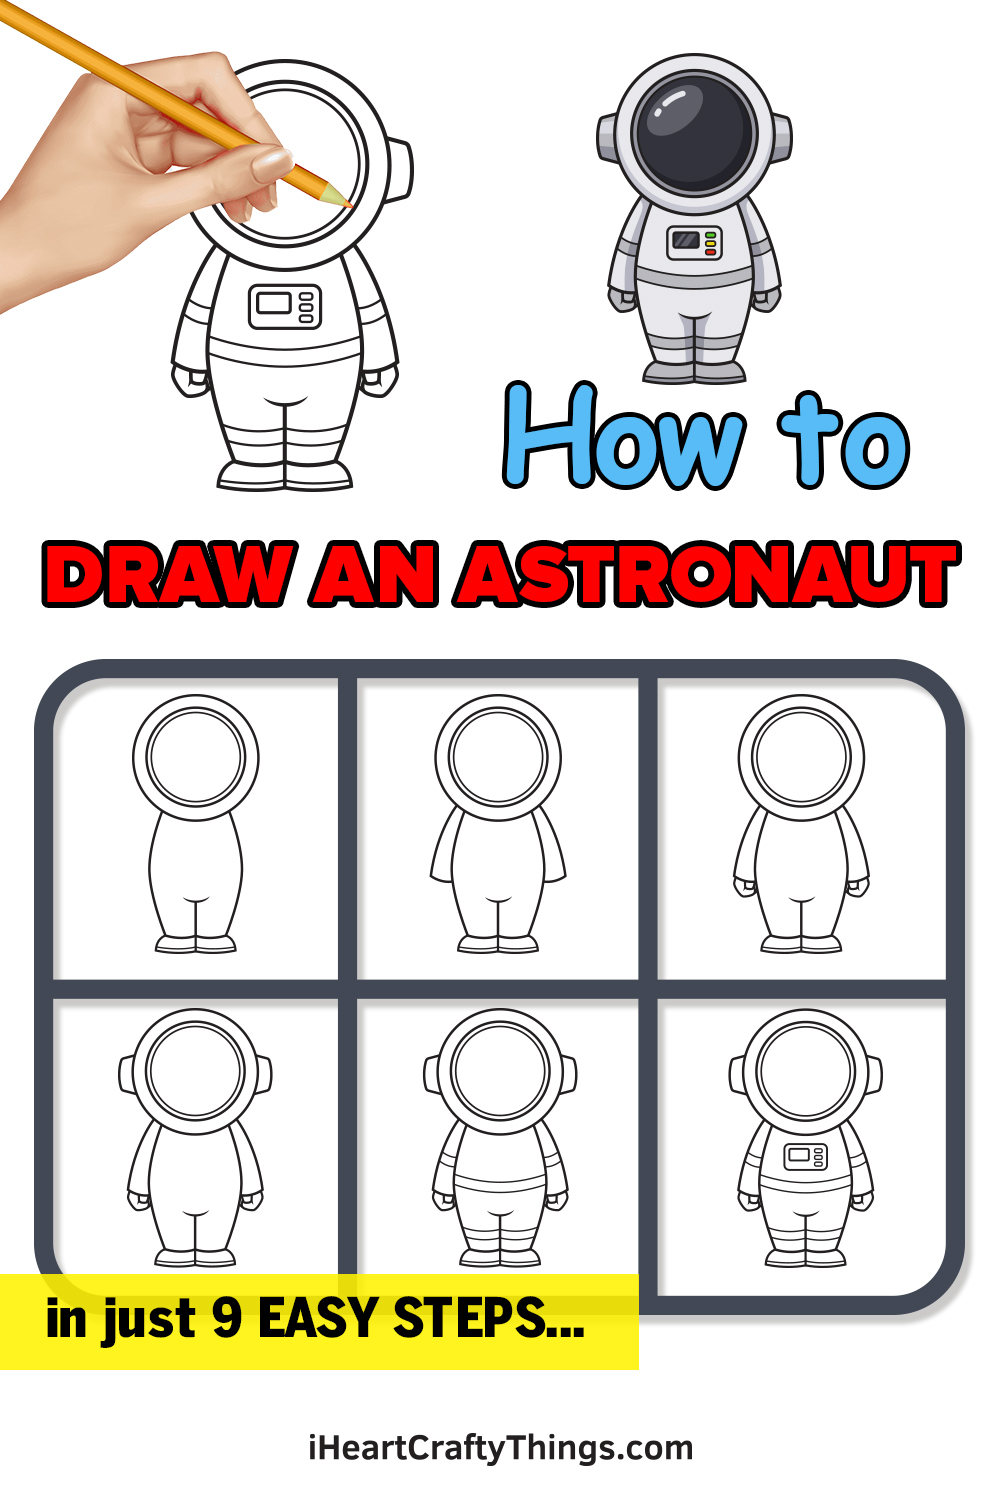 how to draw an astronaut in 9 easy steps